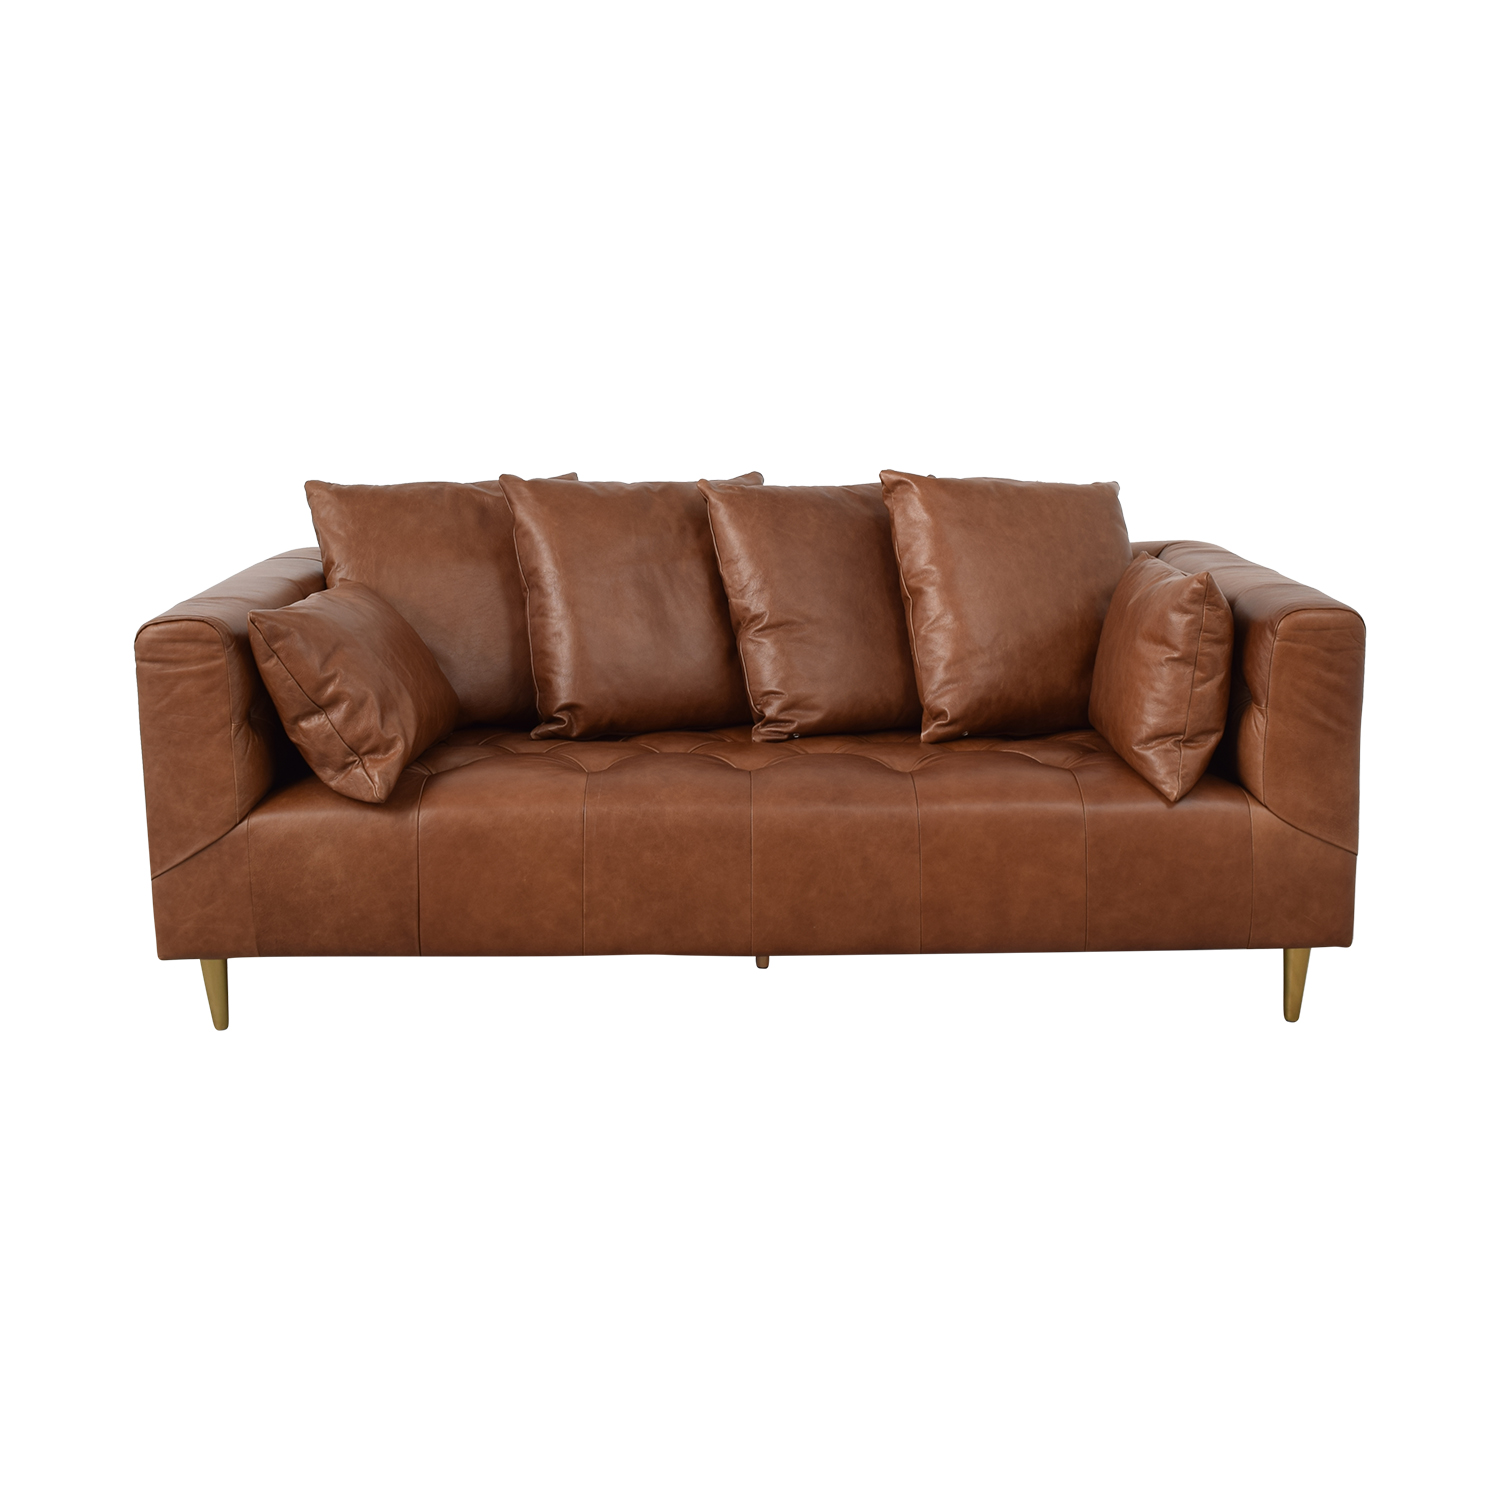 Interior Define Ms. Chesterfield Cognac Tufted Sofa discount